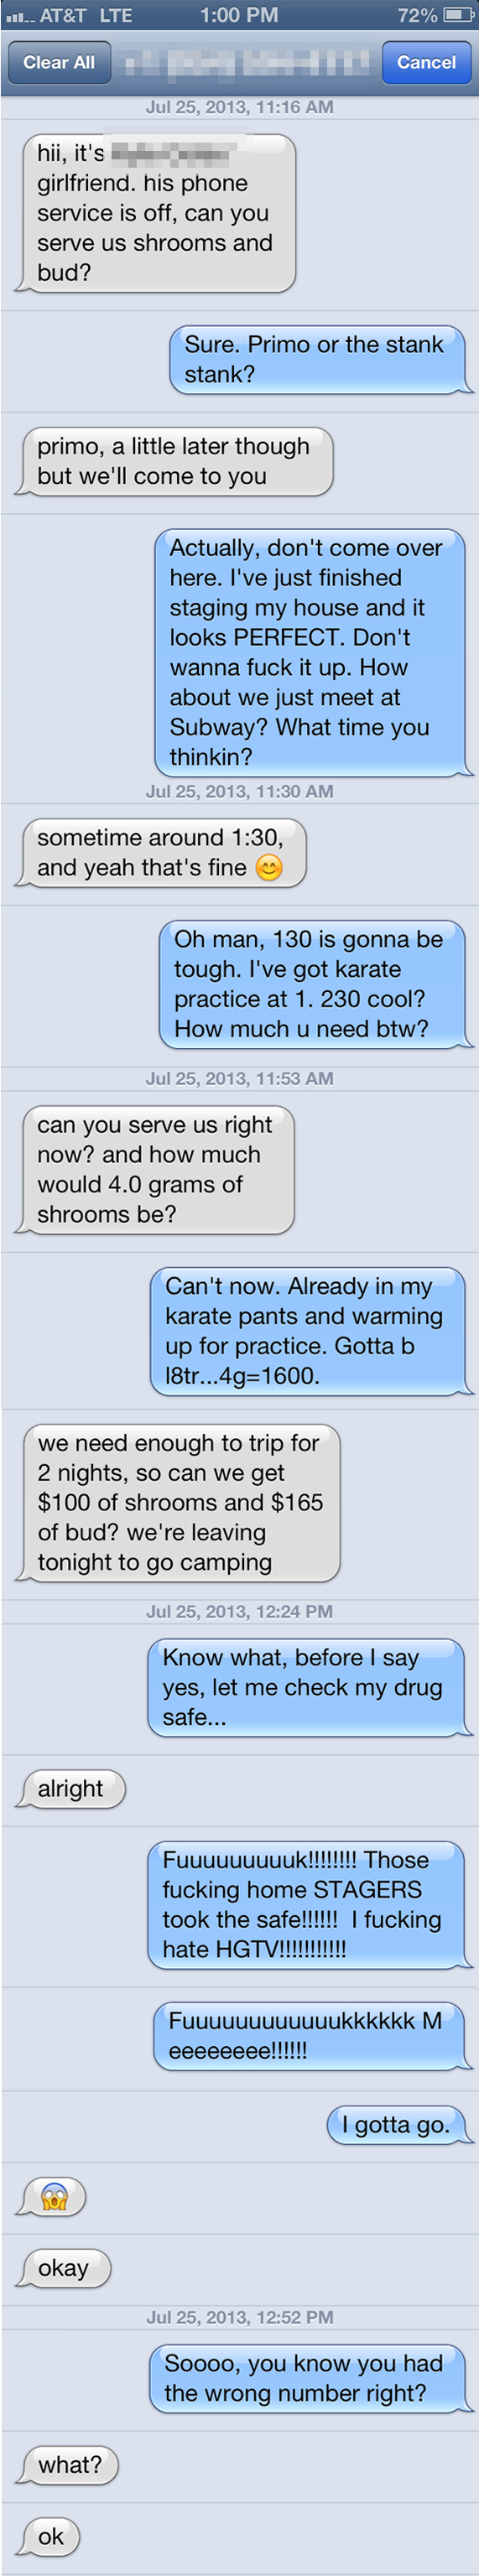 A guy received a wrong number text from someone looking to buy drugs. His response was beyond perfect.